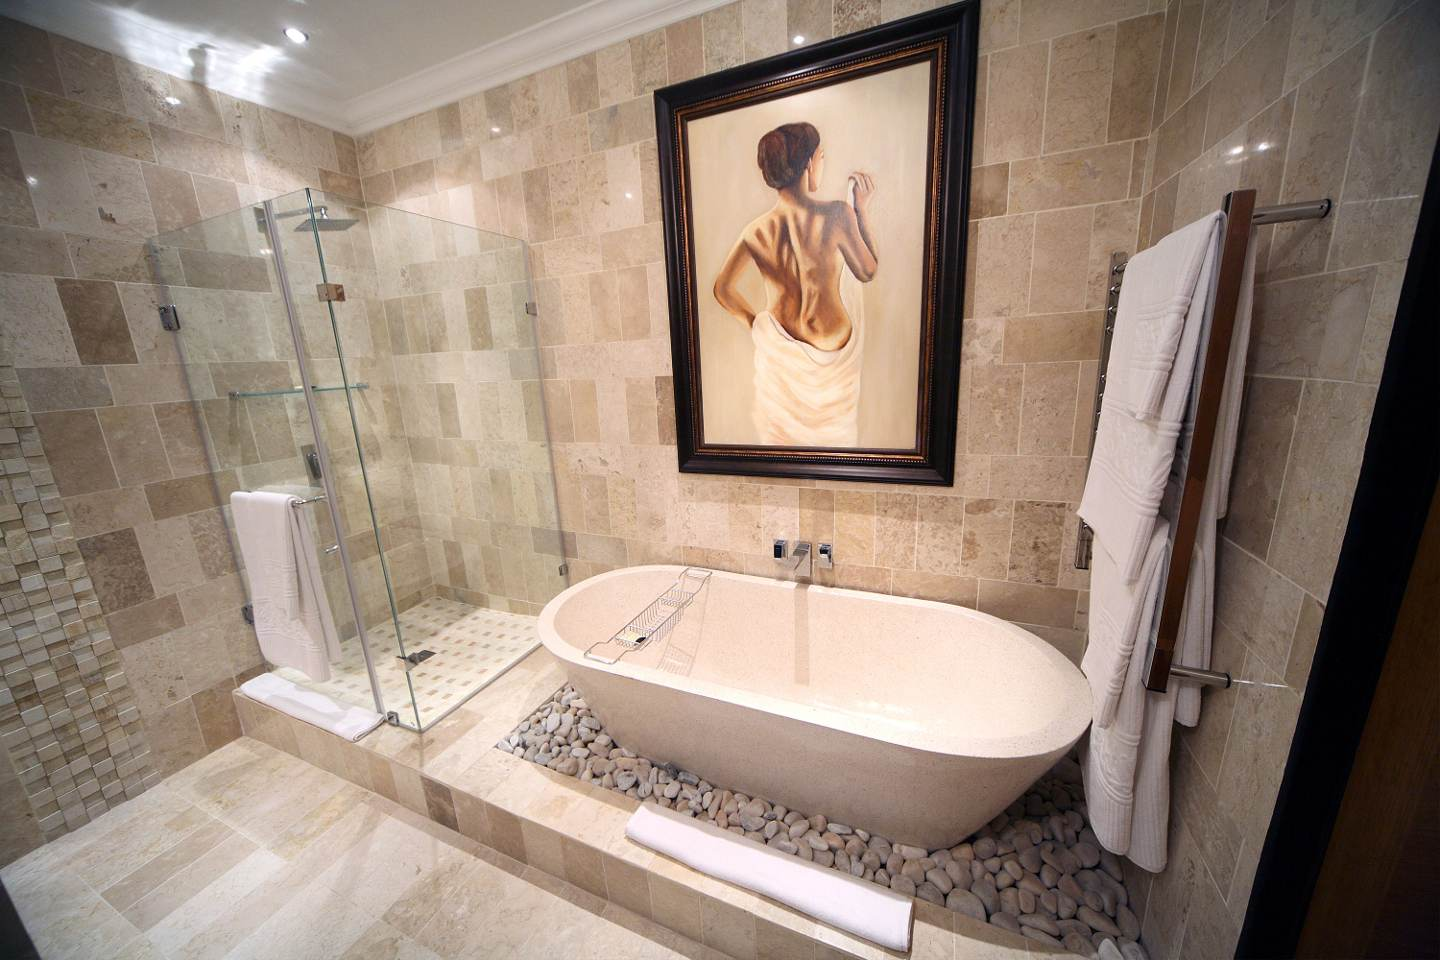 Fusion boutique hotel polokwane pietersburg south africa for Best boutique hotel bathrooms